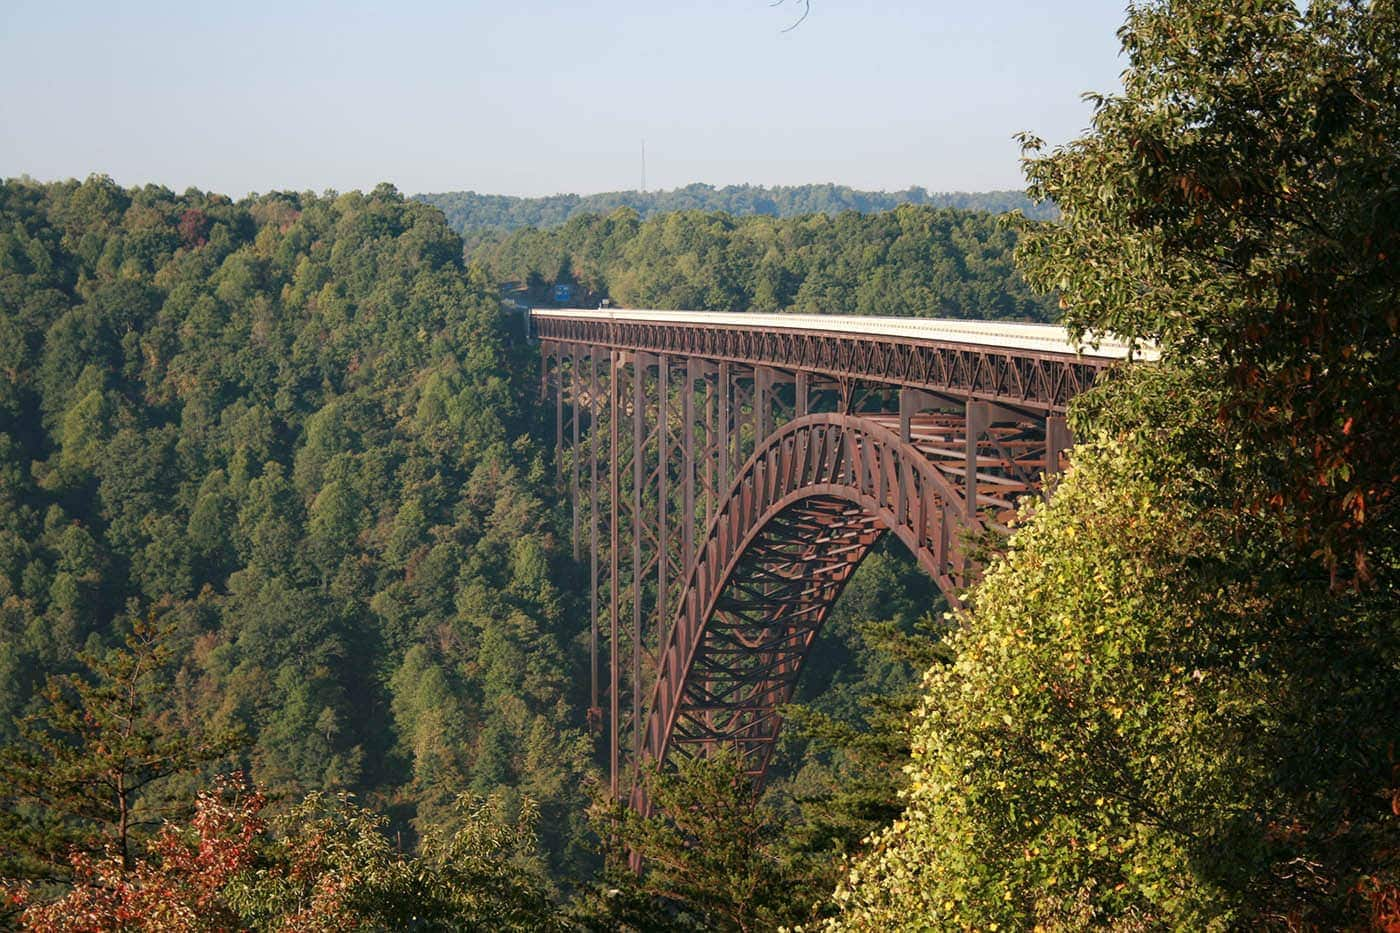 The best West Virginia roadside attractions to visit on a West Virginia road trip. Add these roadside oddities to your travel bucket list or itinerary!